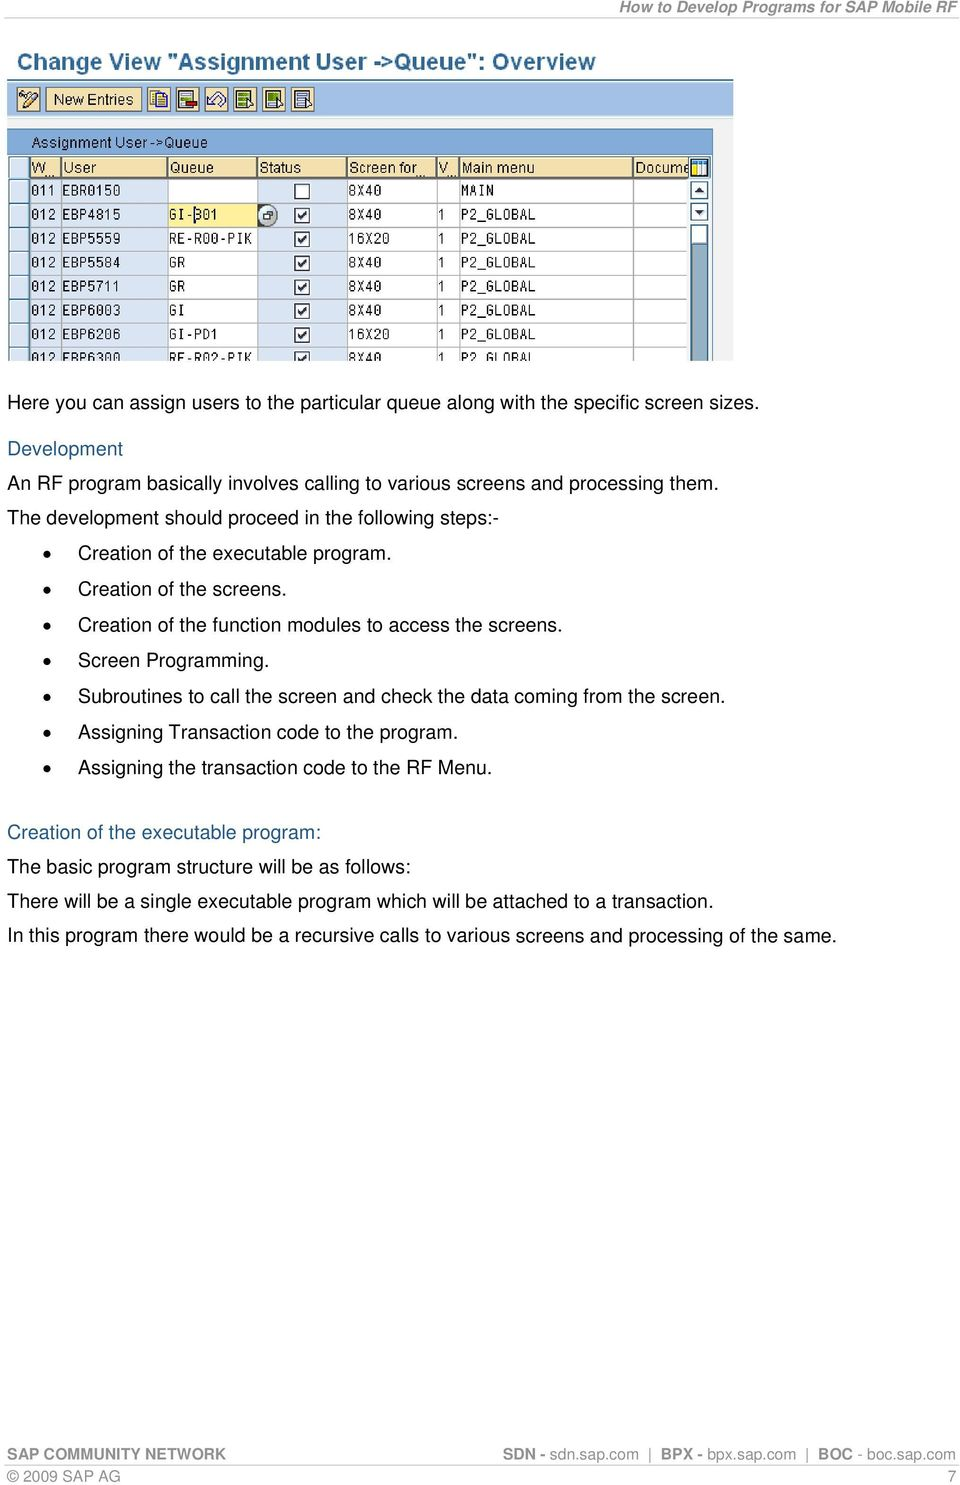 How to Develop Programs for SAP Mobile RF - PDF